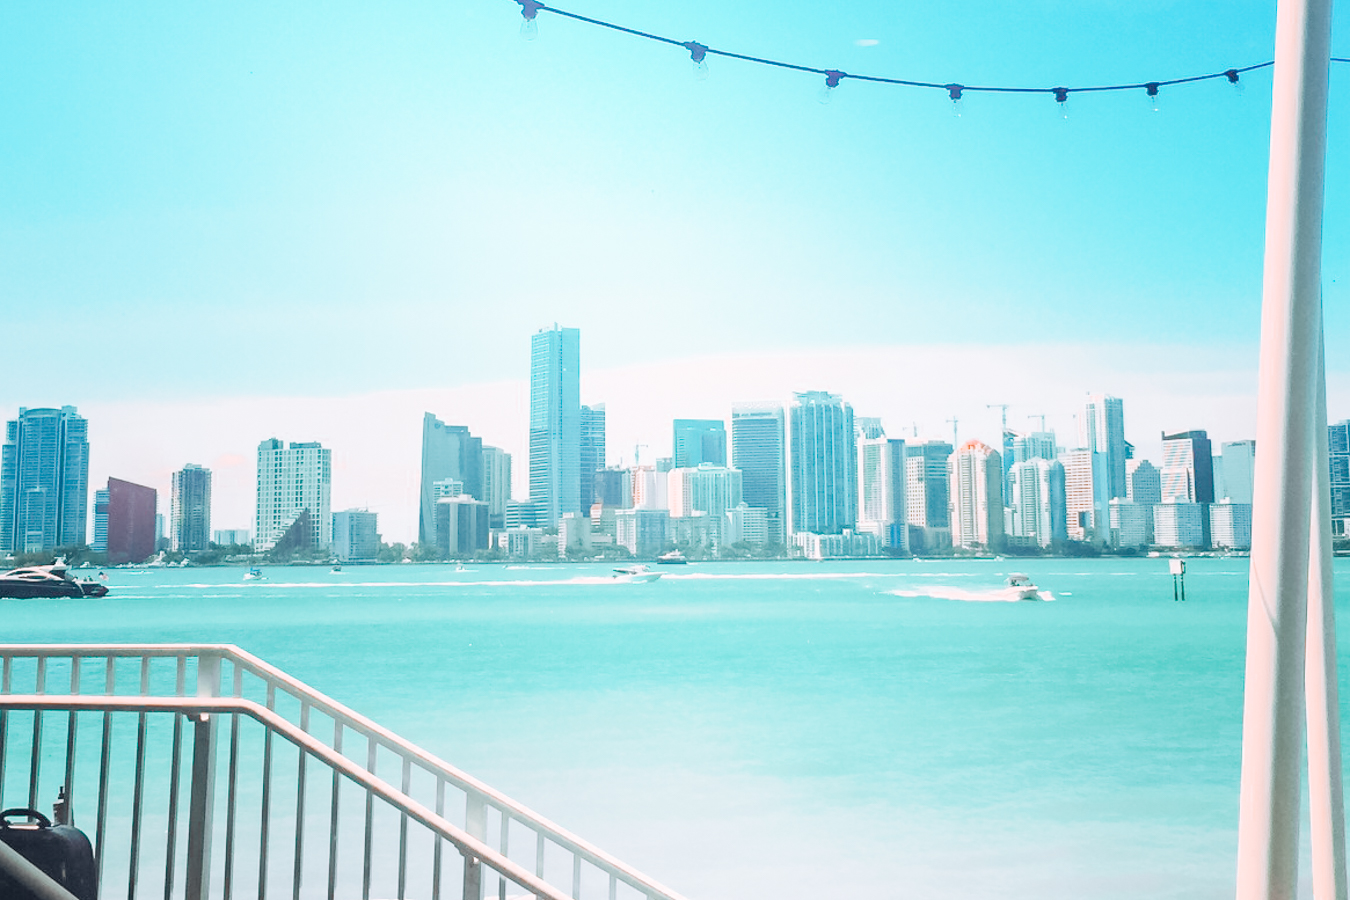 Skyline of Miami and the water